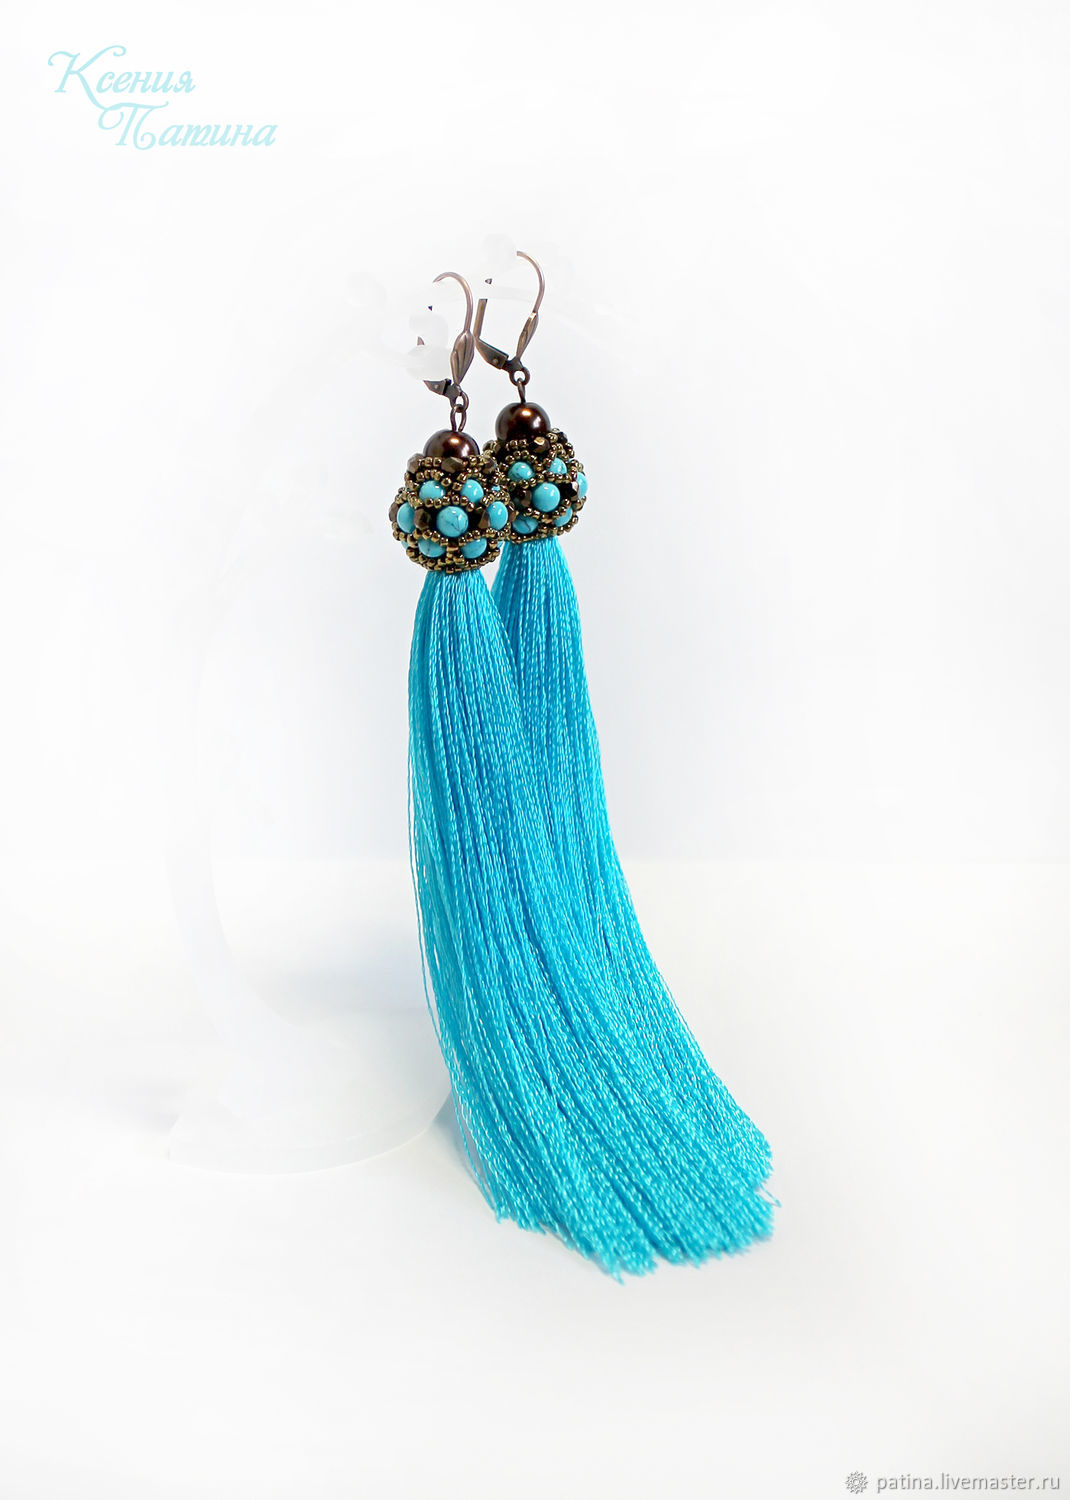 Handmade jewelry. Earrings tassels Turquoise and chocolate. Ksenia Patina. Fair Masters.